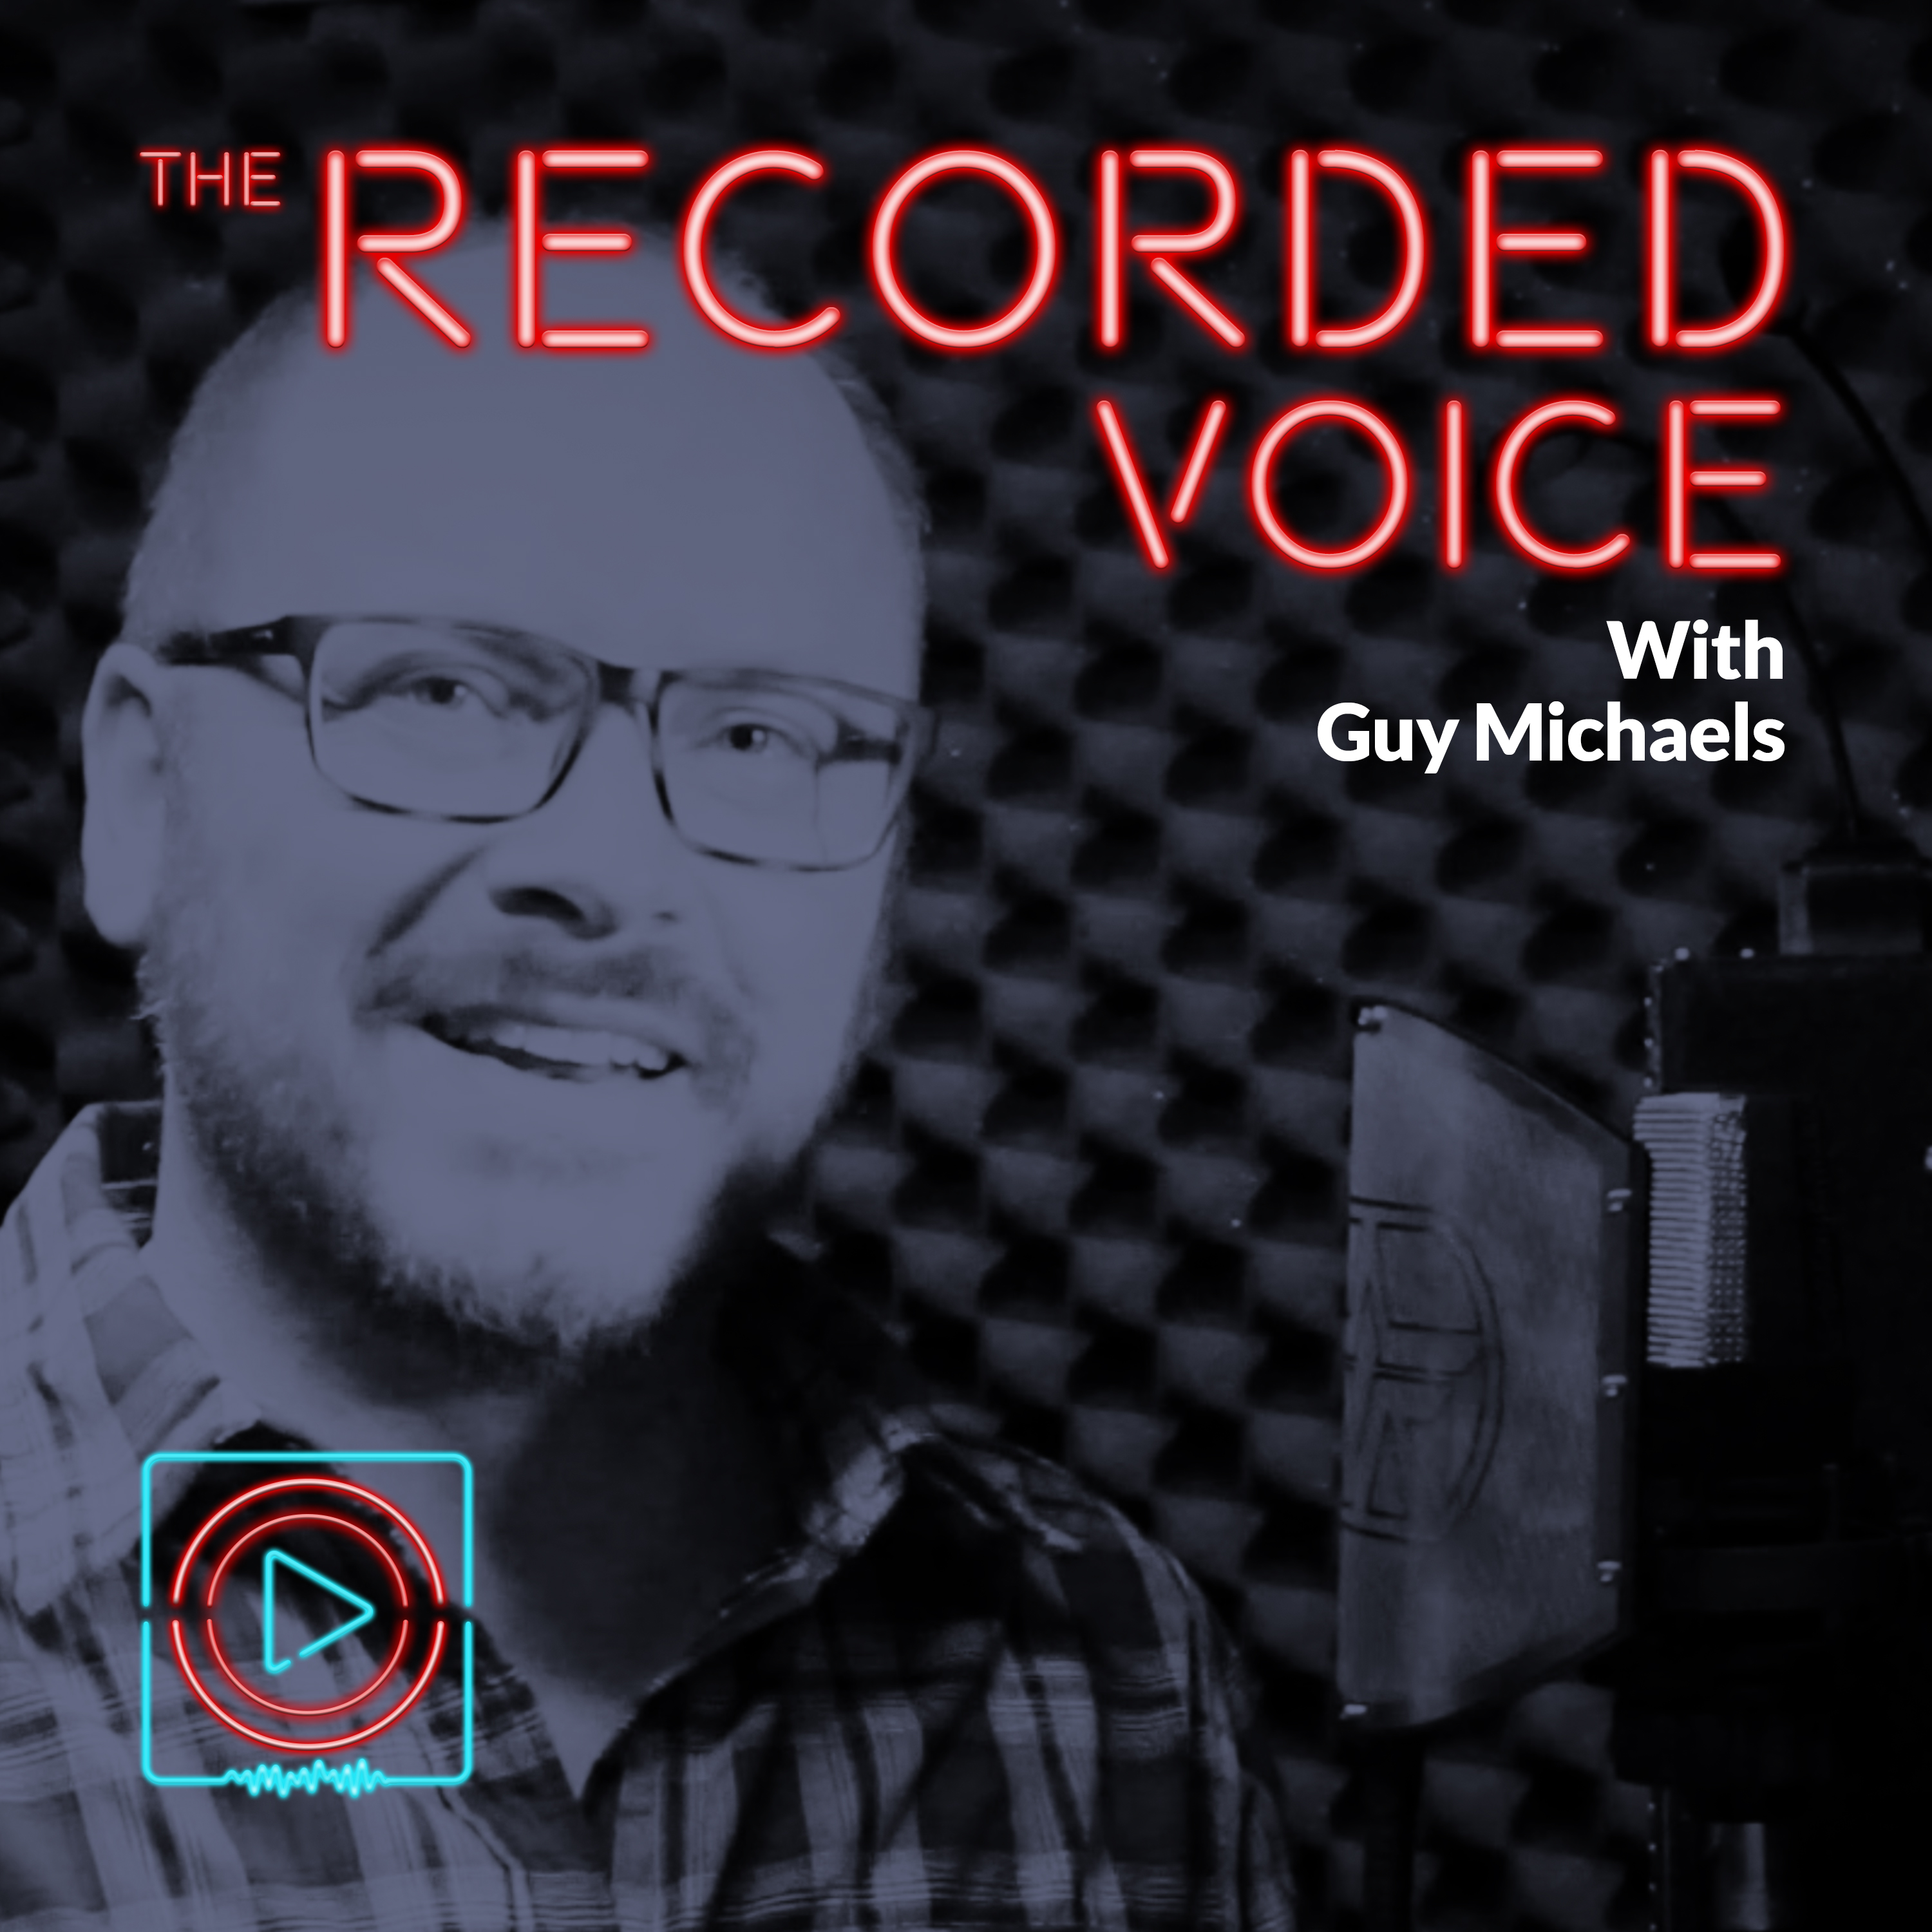 Artwork for podcast The Recorded Voice